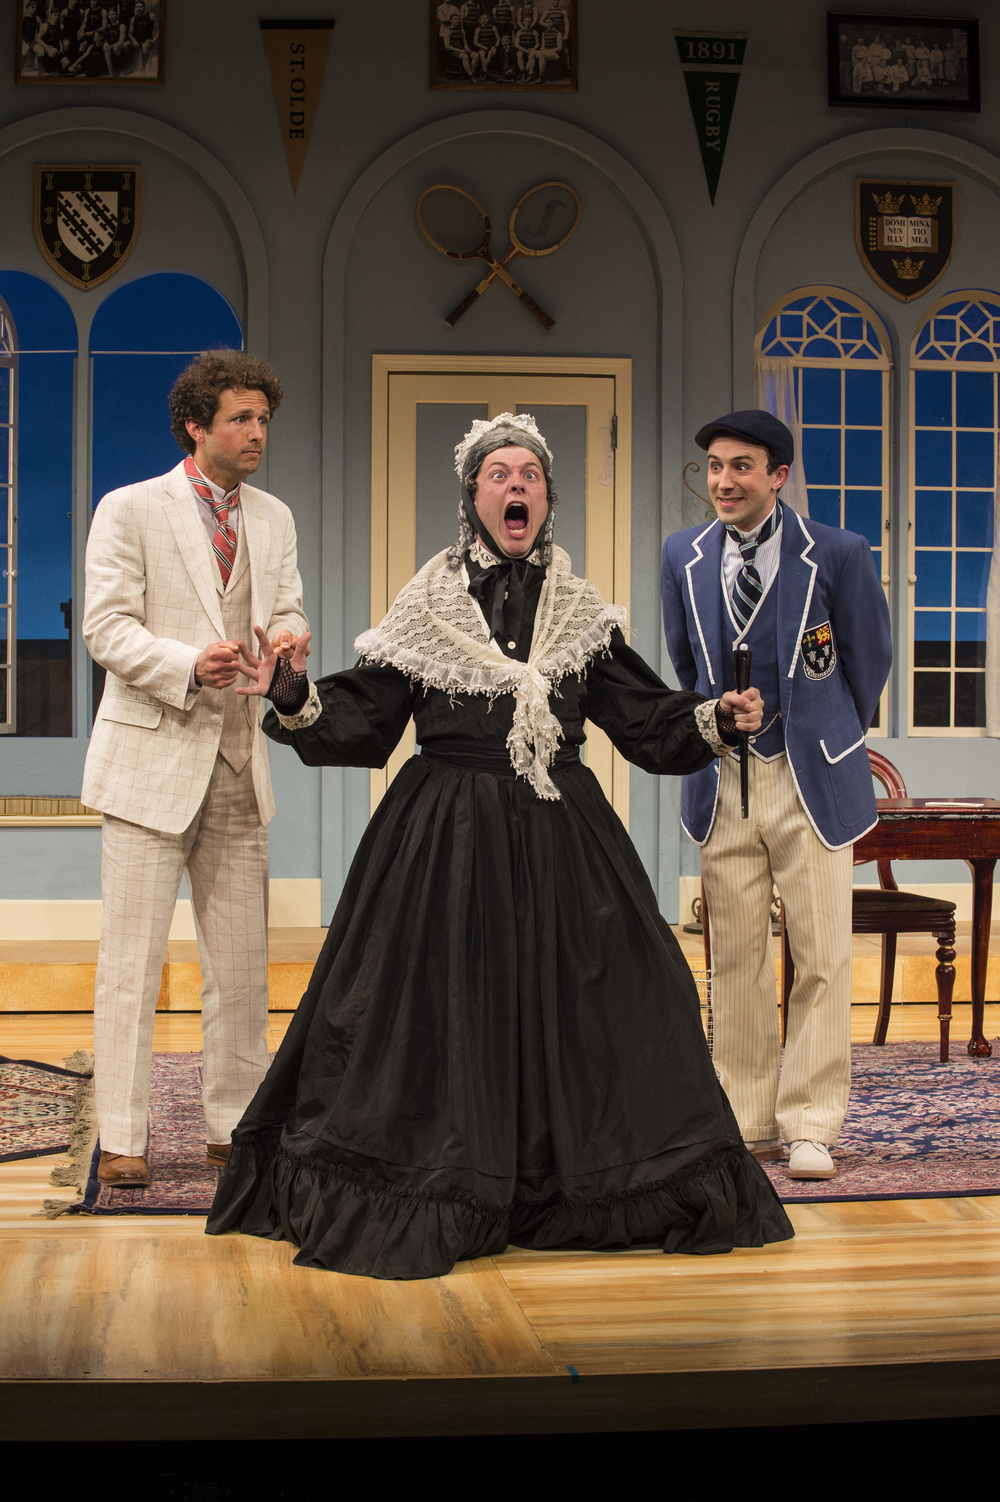 Brendan Marshall Rashid (left) as Jack Chesney, Michael Doherty as Lord Fancourt Babberley, and Tasso Feldman as Charley Wykeham